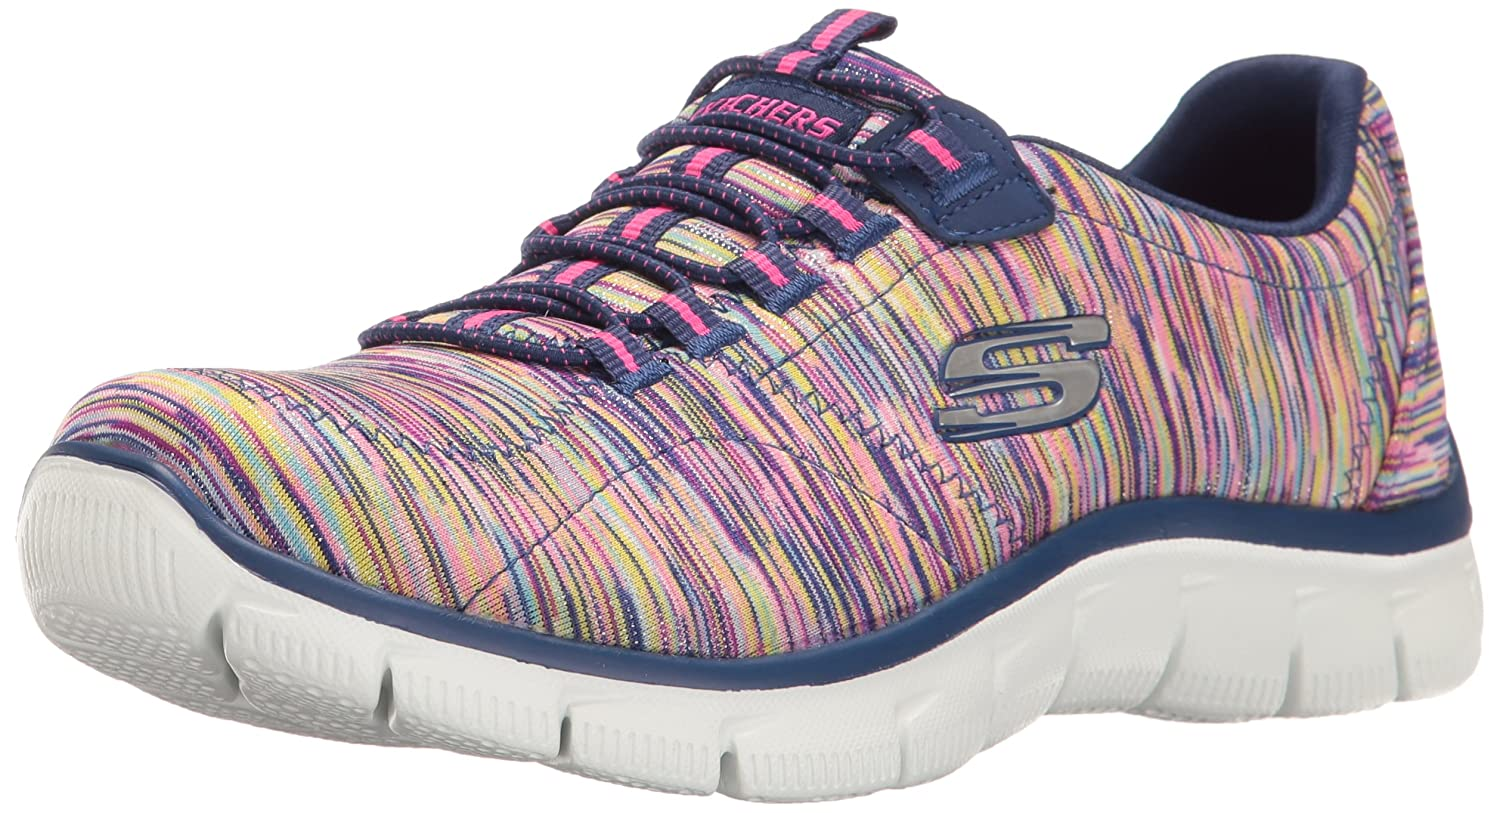 Skechers Sport Women's Empire Fashion Sneaker B01K4GL0TO 10 B(M) US|Navy/Multi